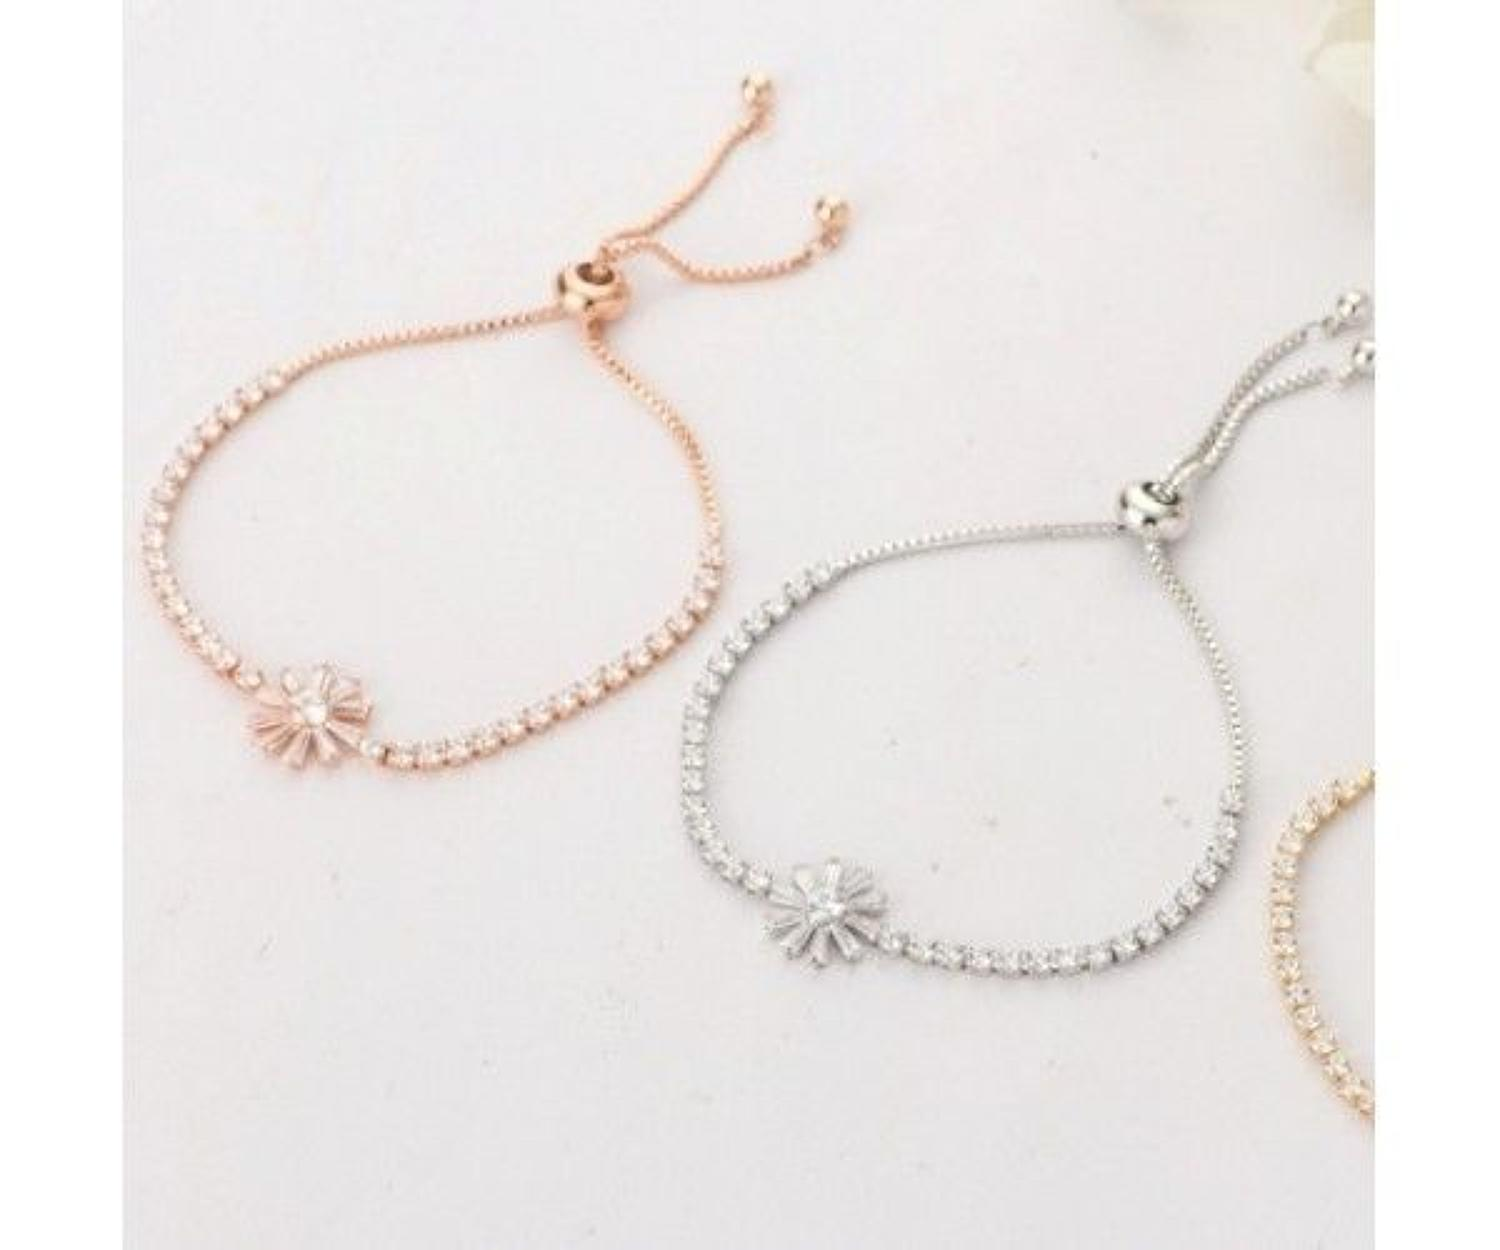 Snowflake Rose Gold Plated Adjustable Toggle Bracelet